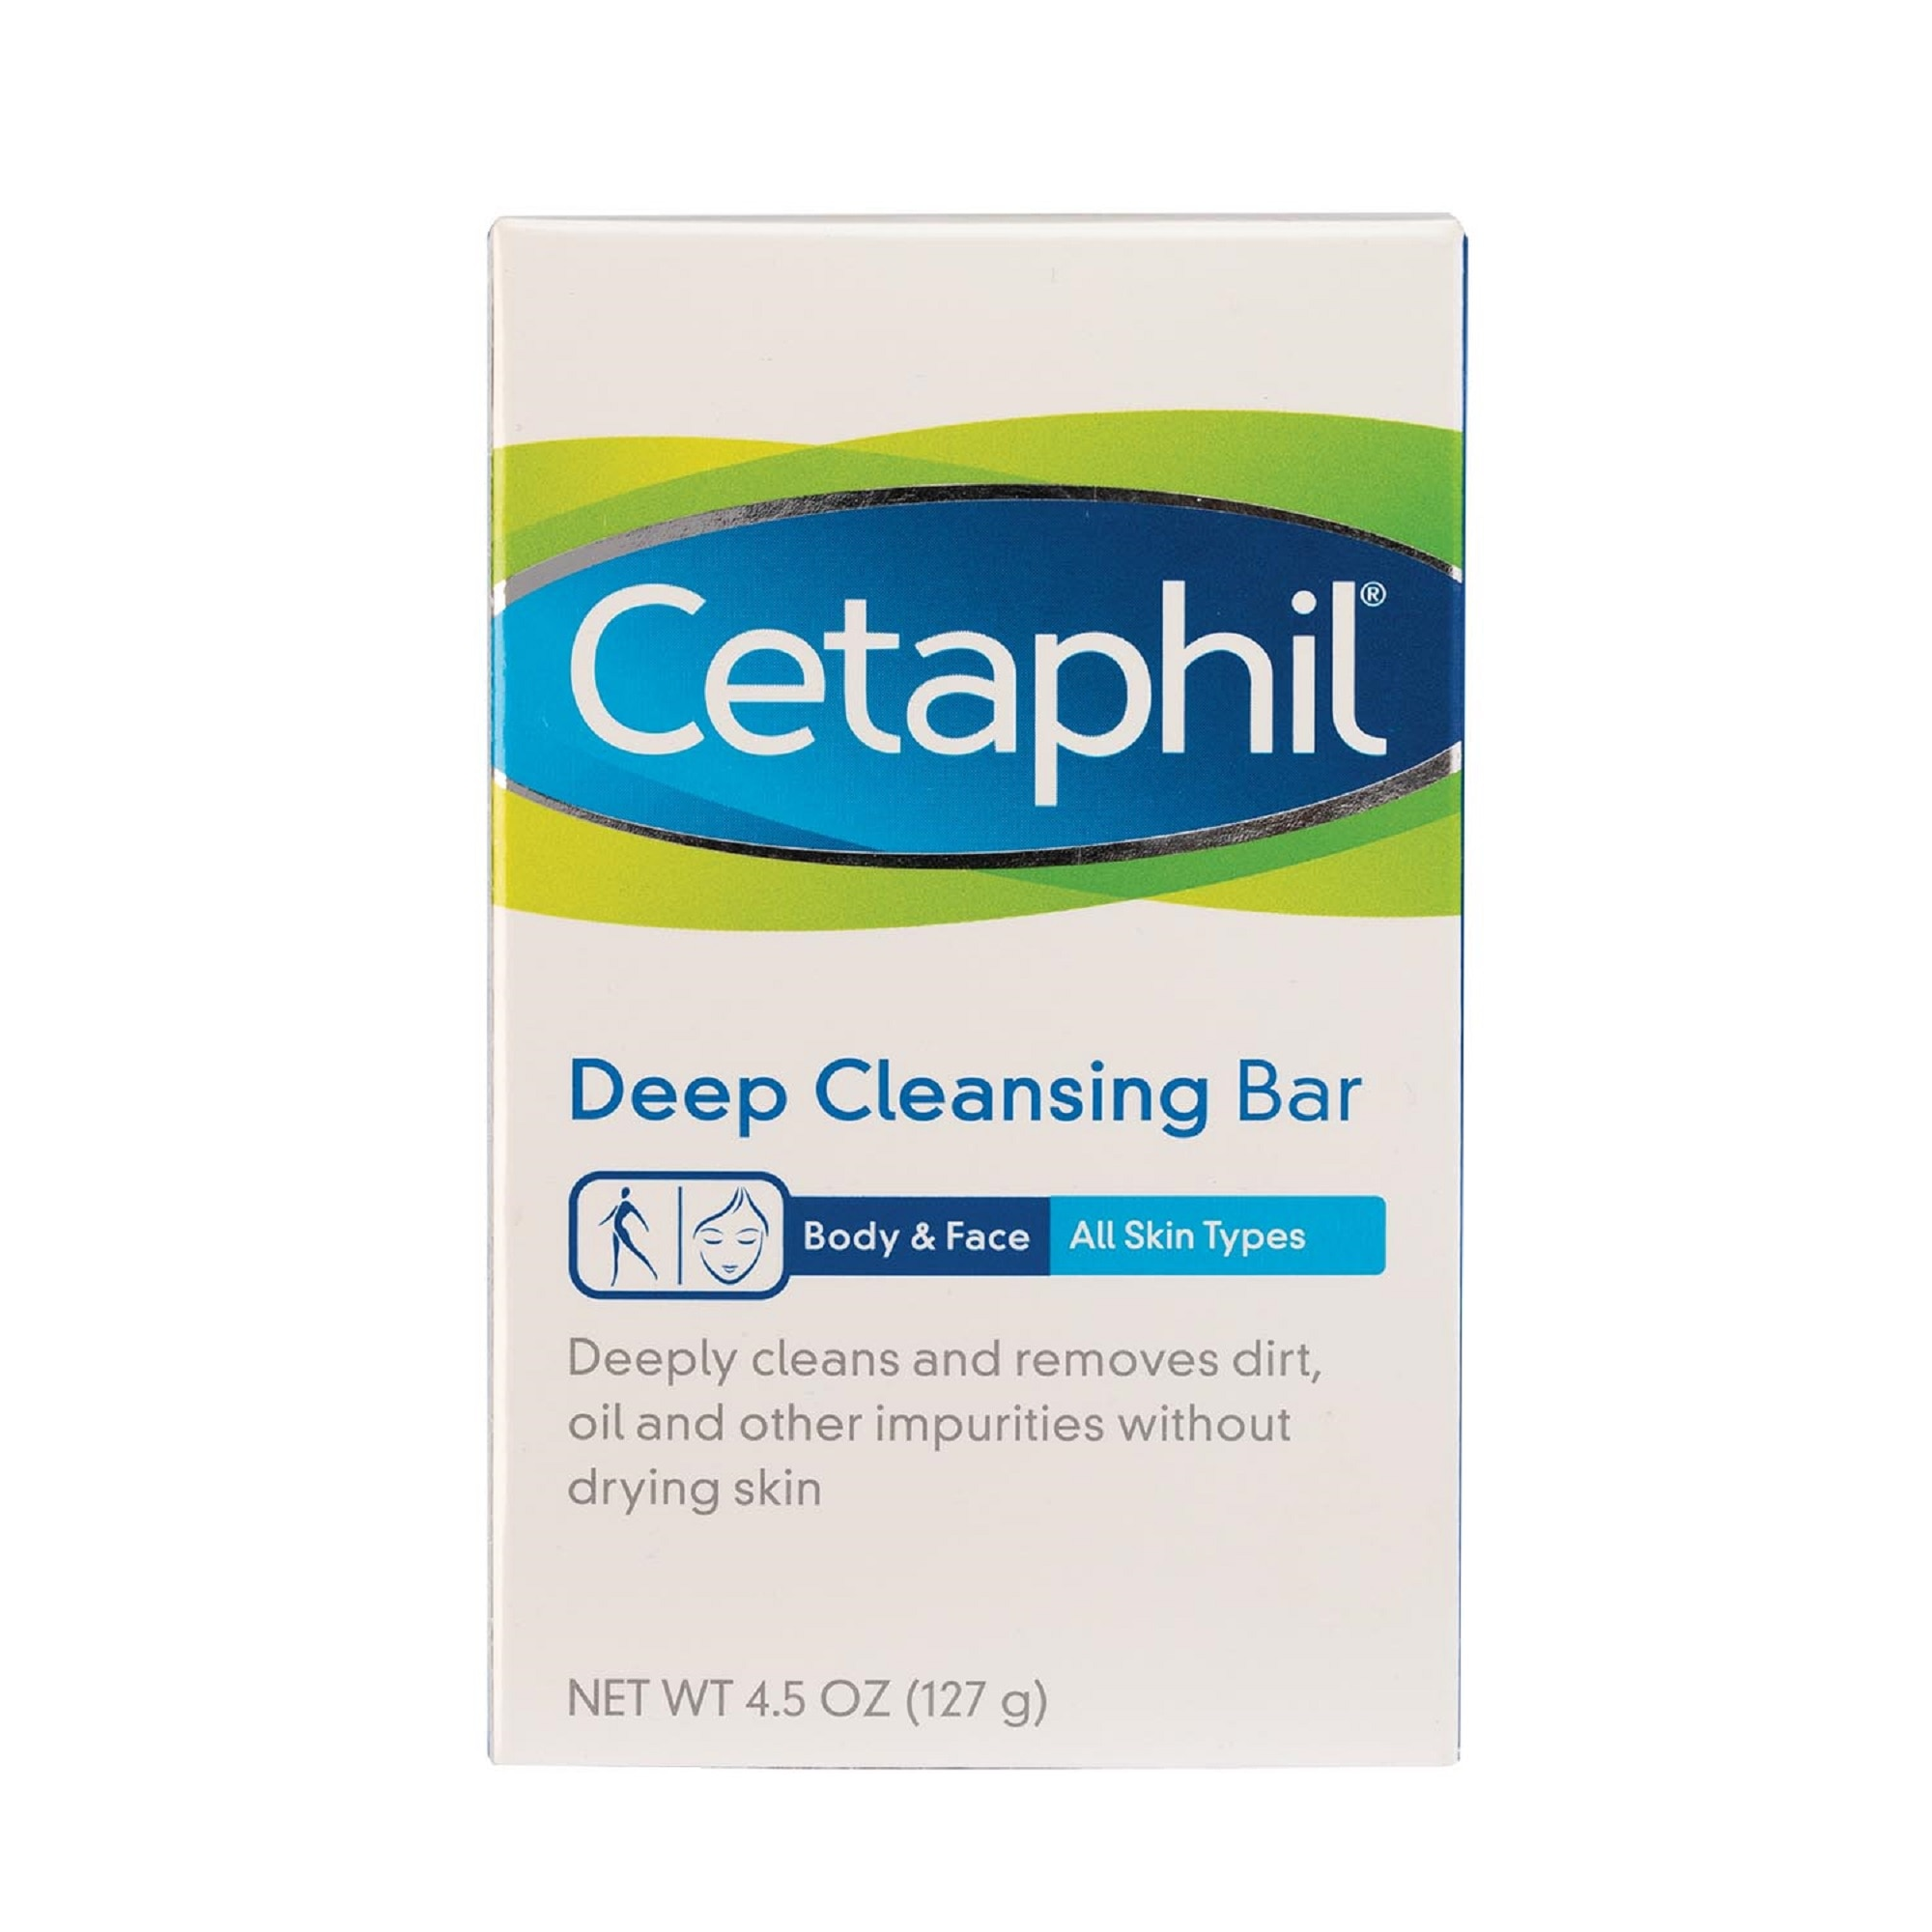 Cetaphil Deep Cleansing Bar 127g [For Dry and Sensitive Skin / Gentle Moisturizing Body Bar Soap]